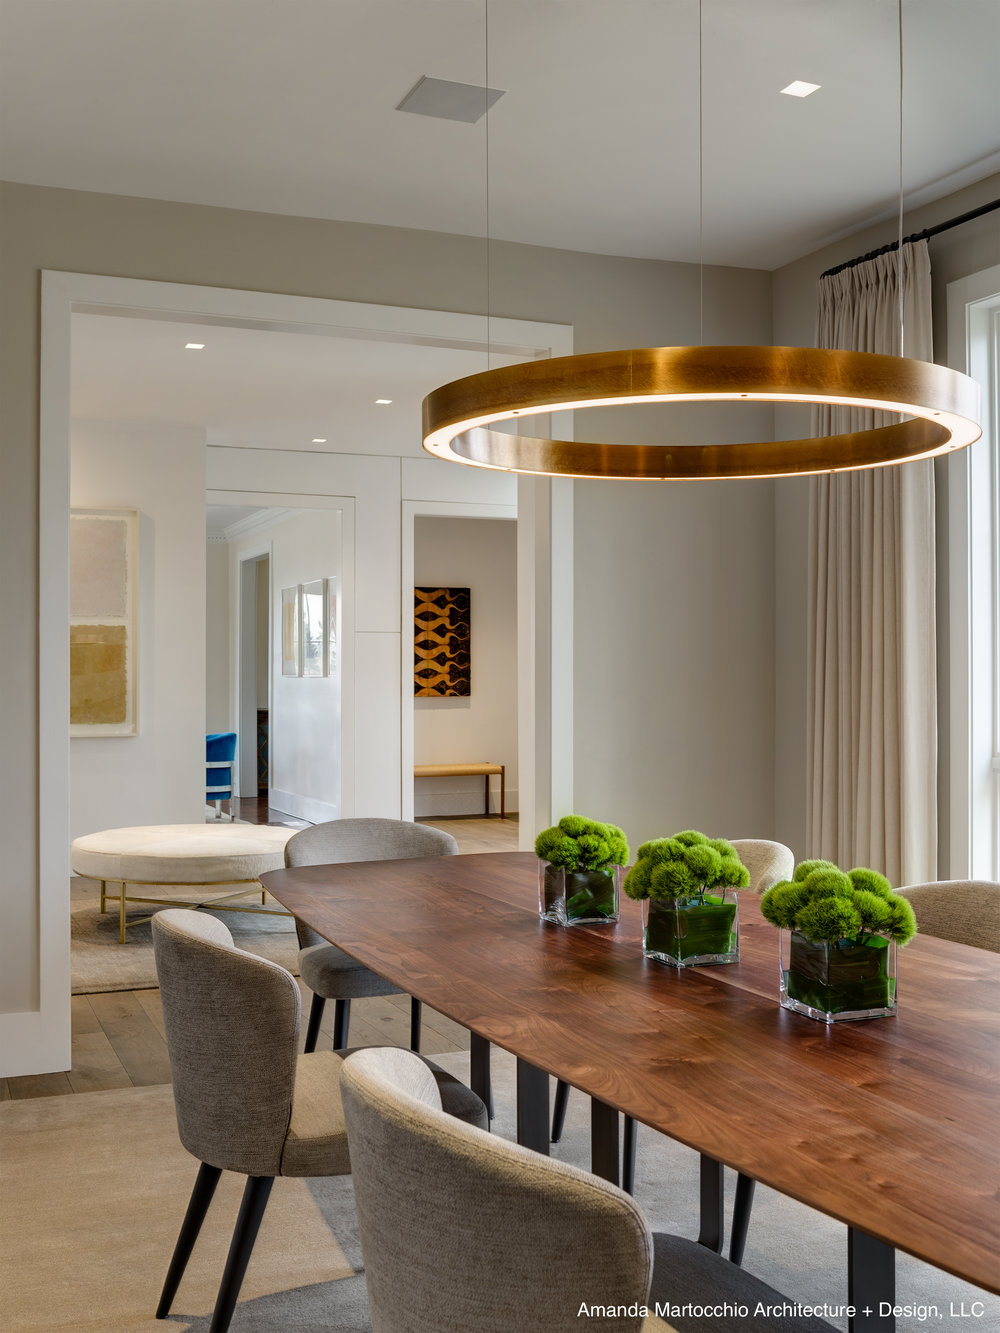 13-AMAD - Coves End Road - Interior Dining Room Toward Entry.jpg